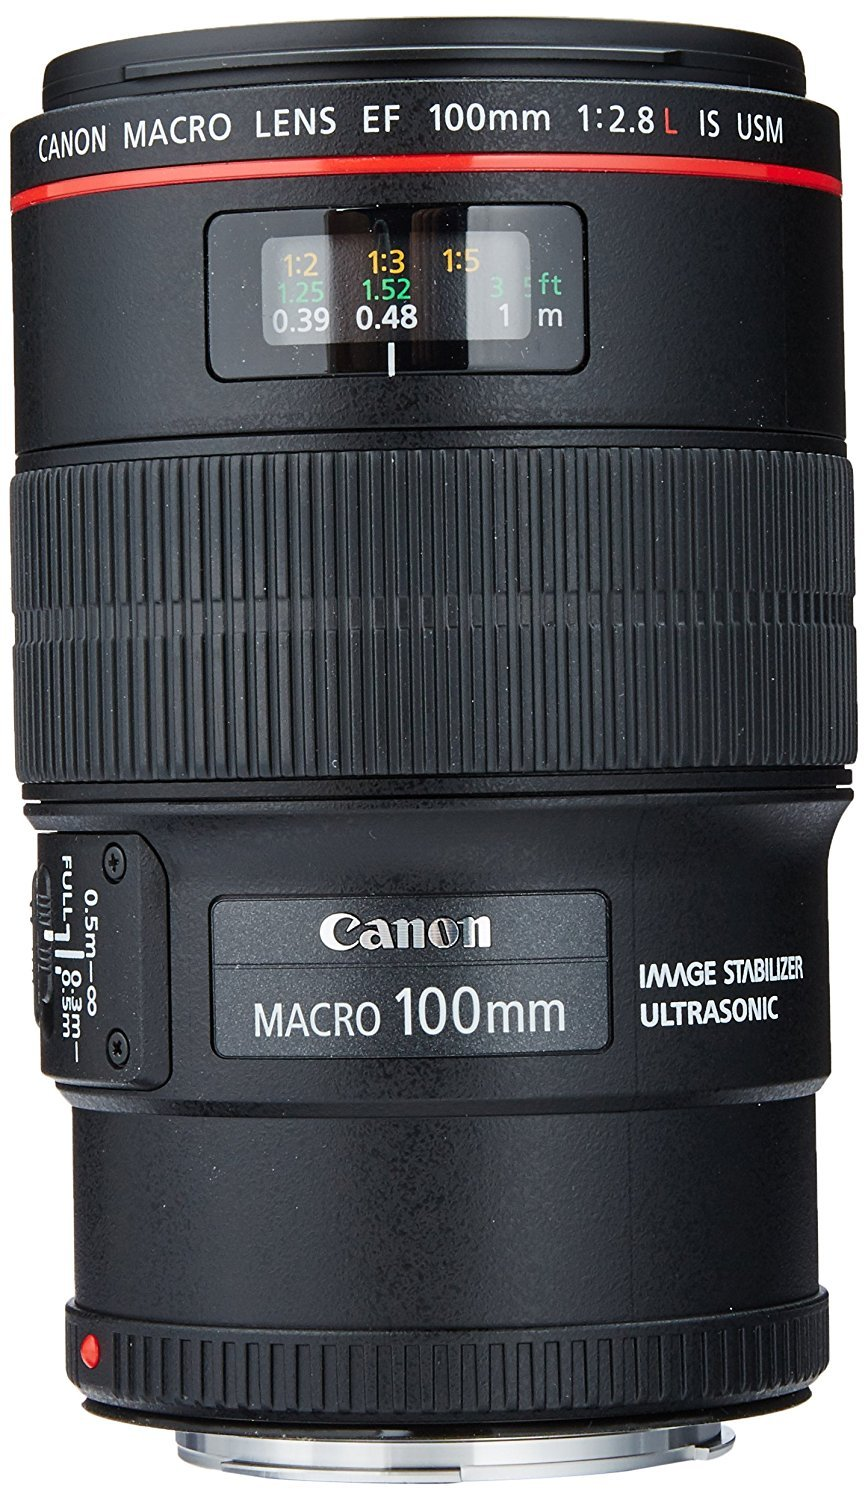 Canon EF 100mm f/2.8L IS USM Macro Lens for Canon Digital SLR Cameras by Canon